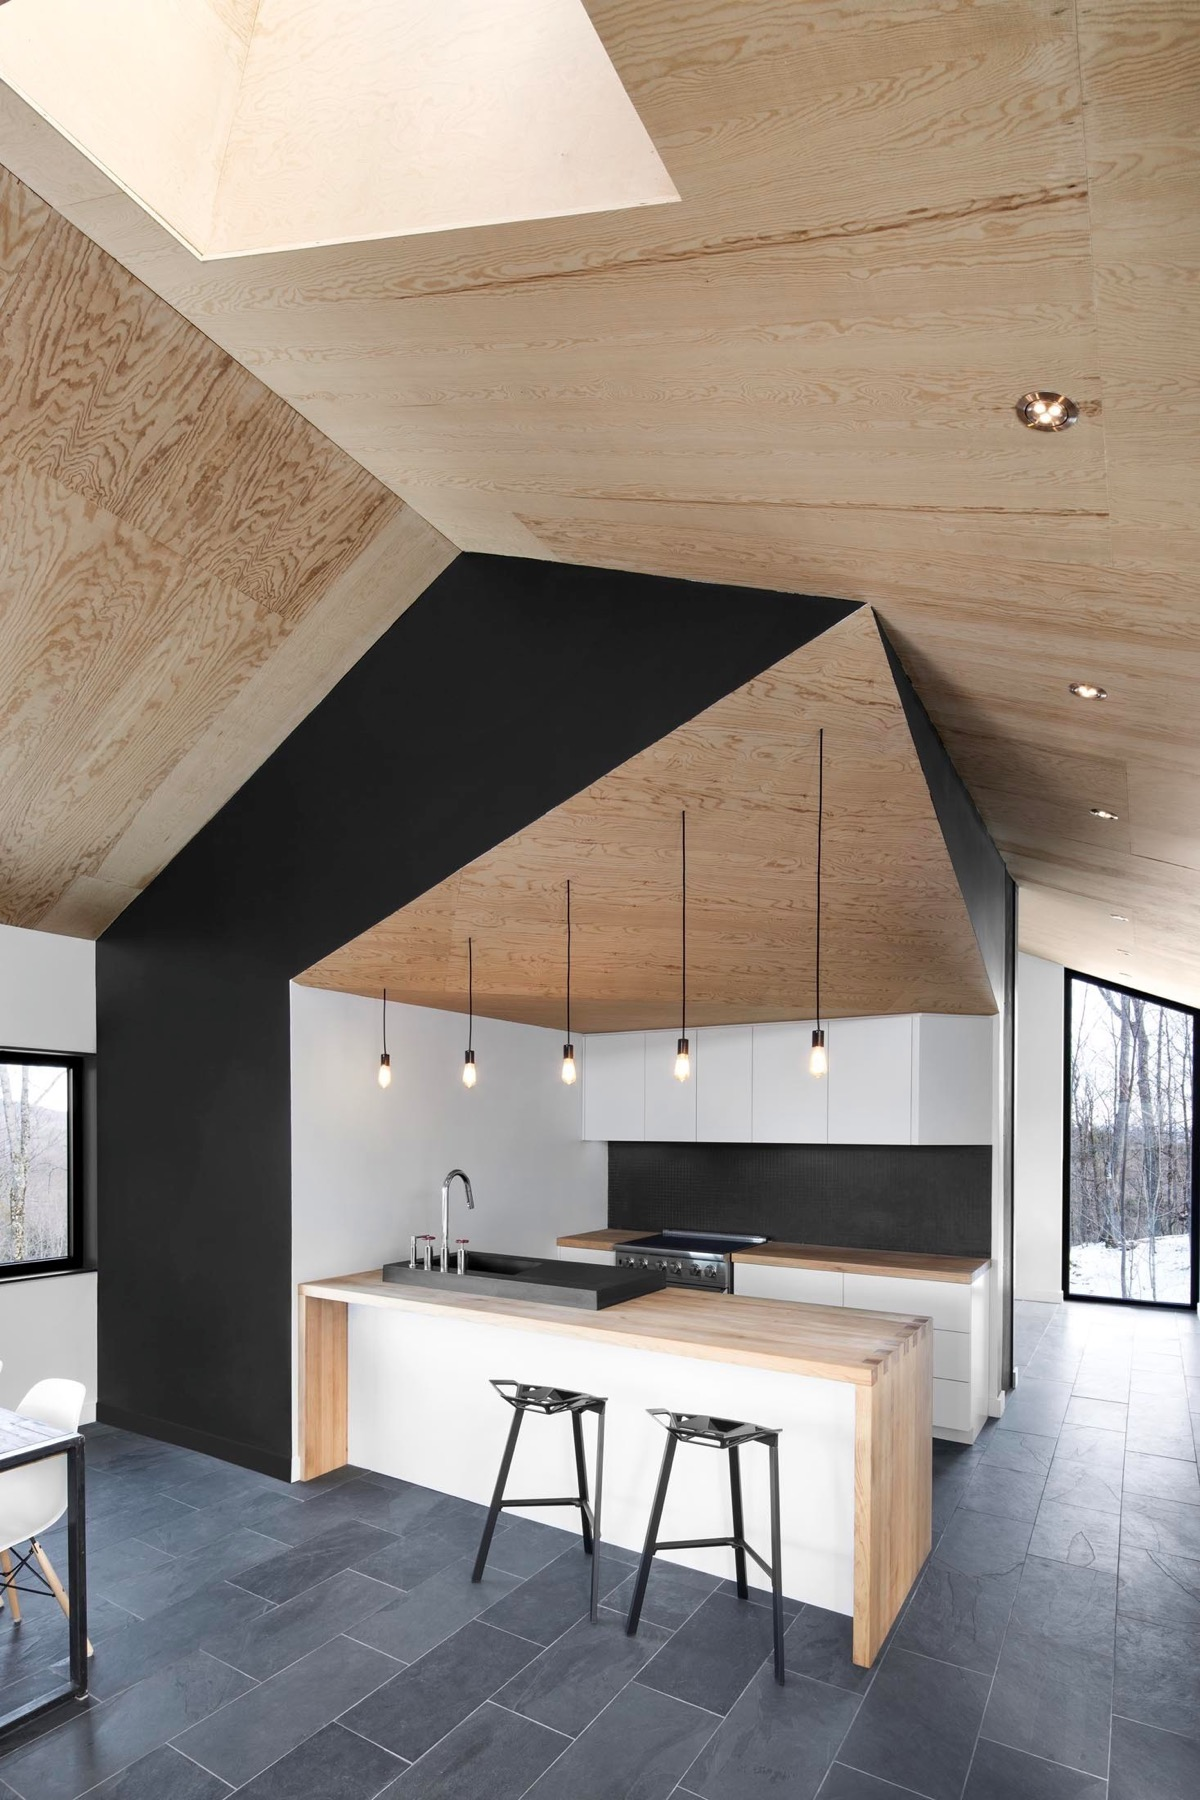 Cool Ceiling Coolkitchenceiling  Interior Design Ideas.